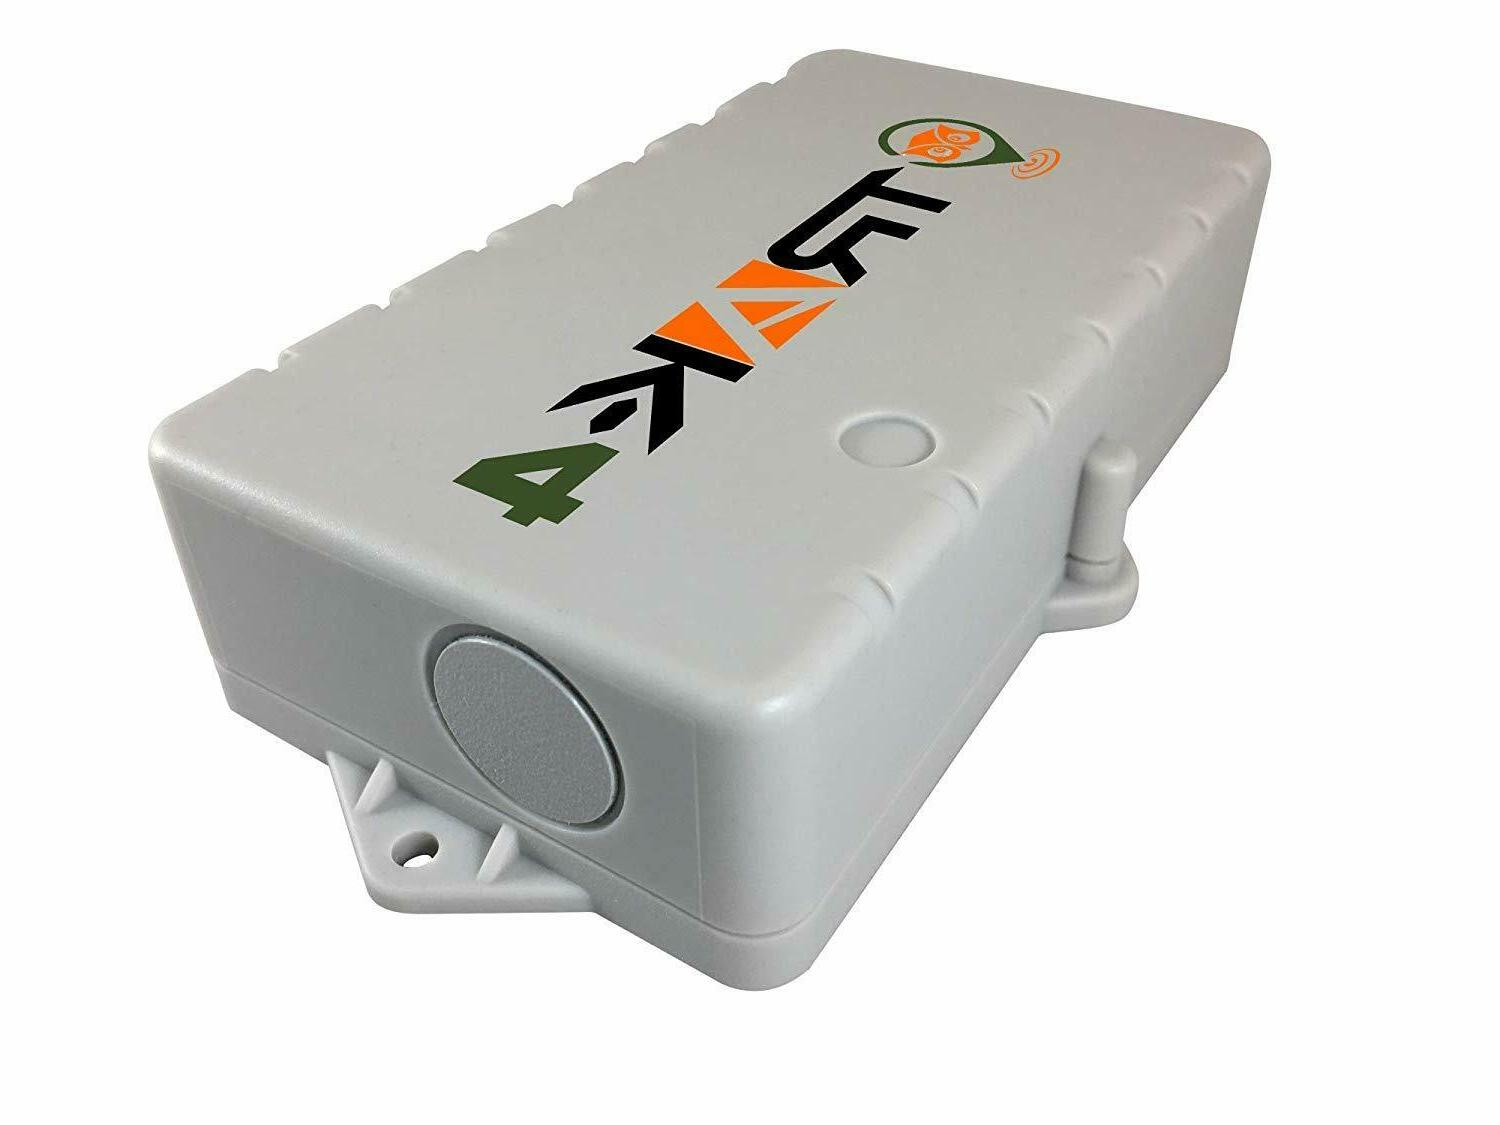 trak 4 gps tracker for tracking assets